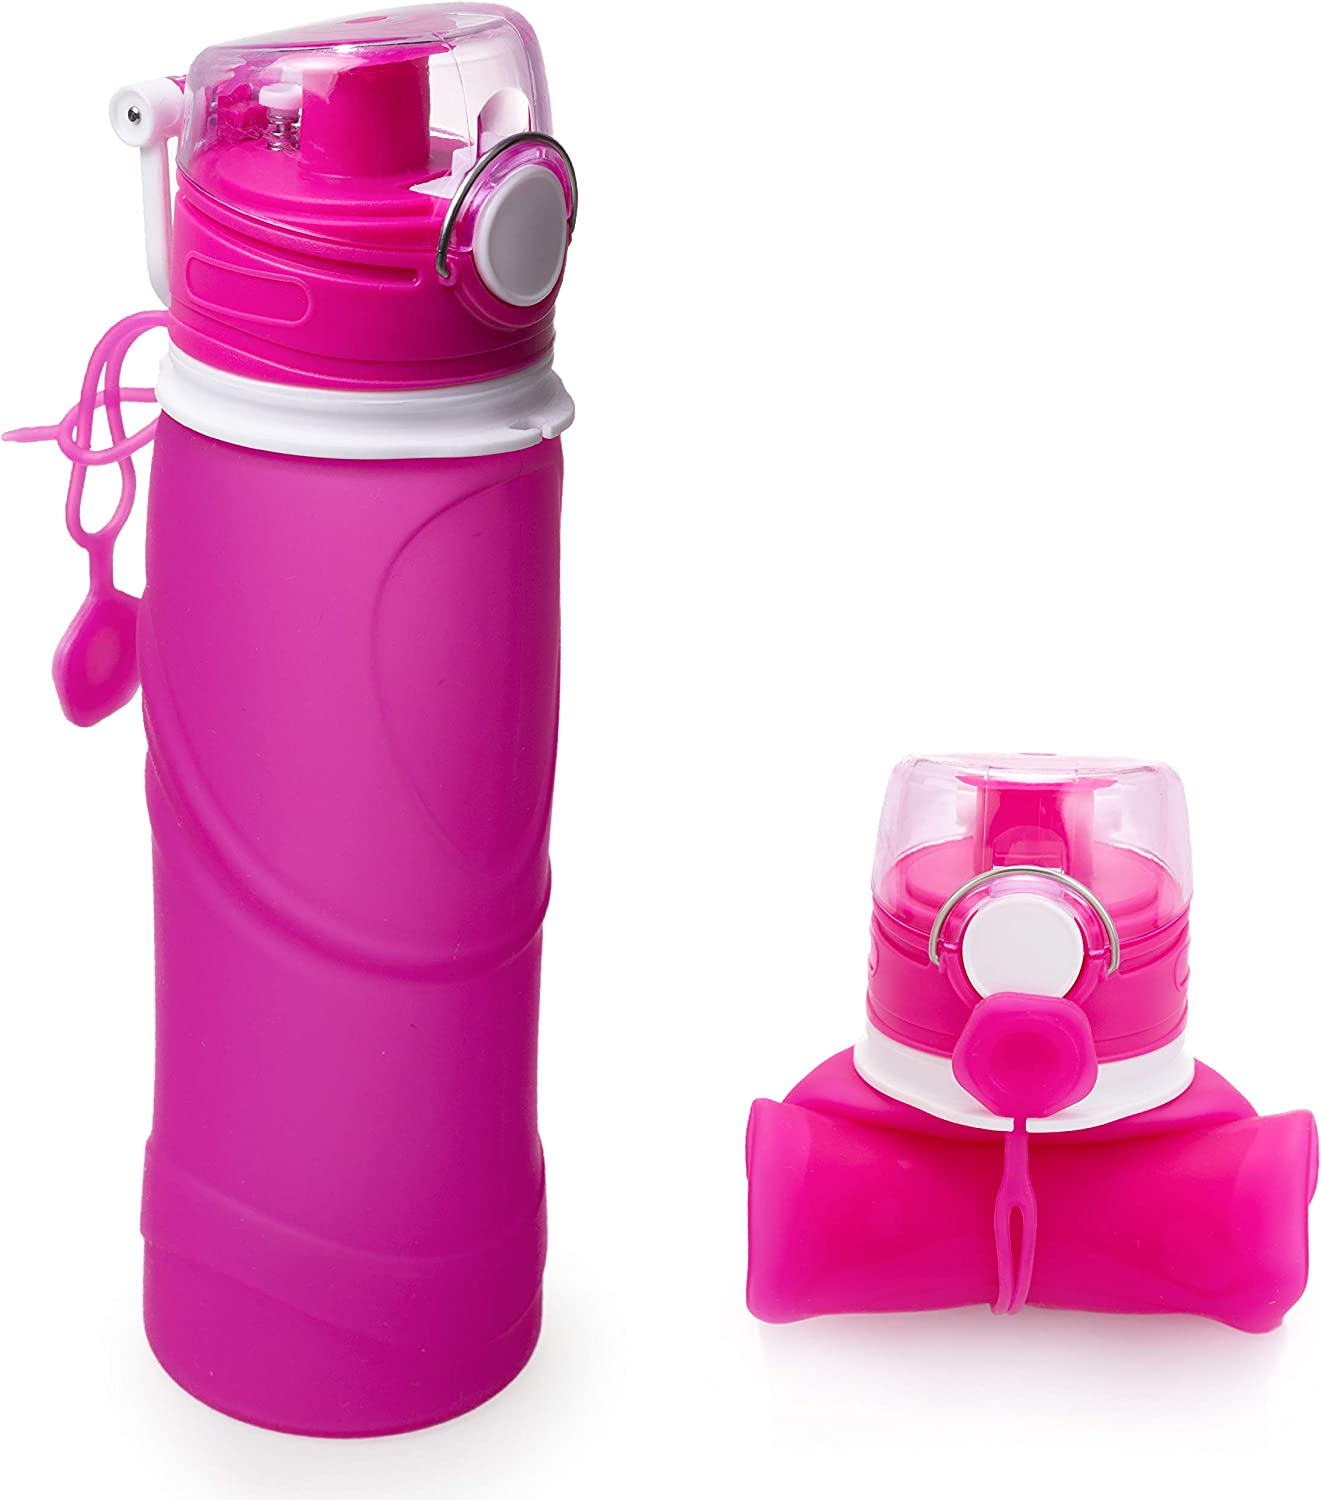 K-vong Collapsible Water Bottle - BPA Free, 22 oz-leak proof-sport-outdoor-silicone folding water bottle Pink